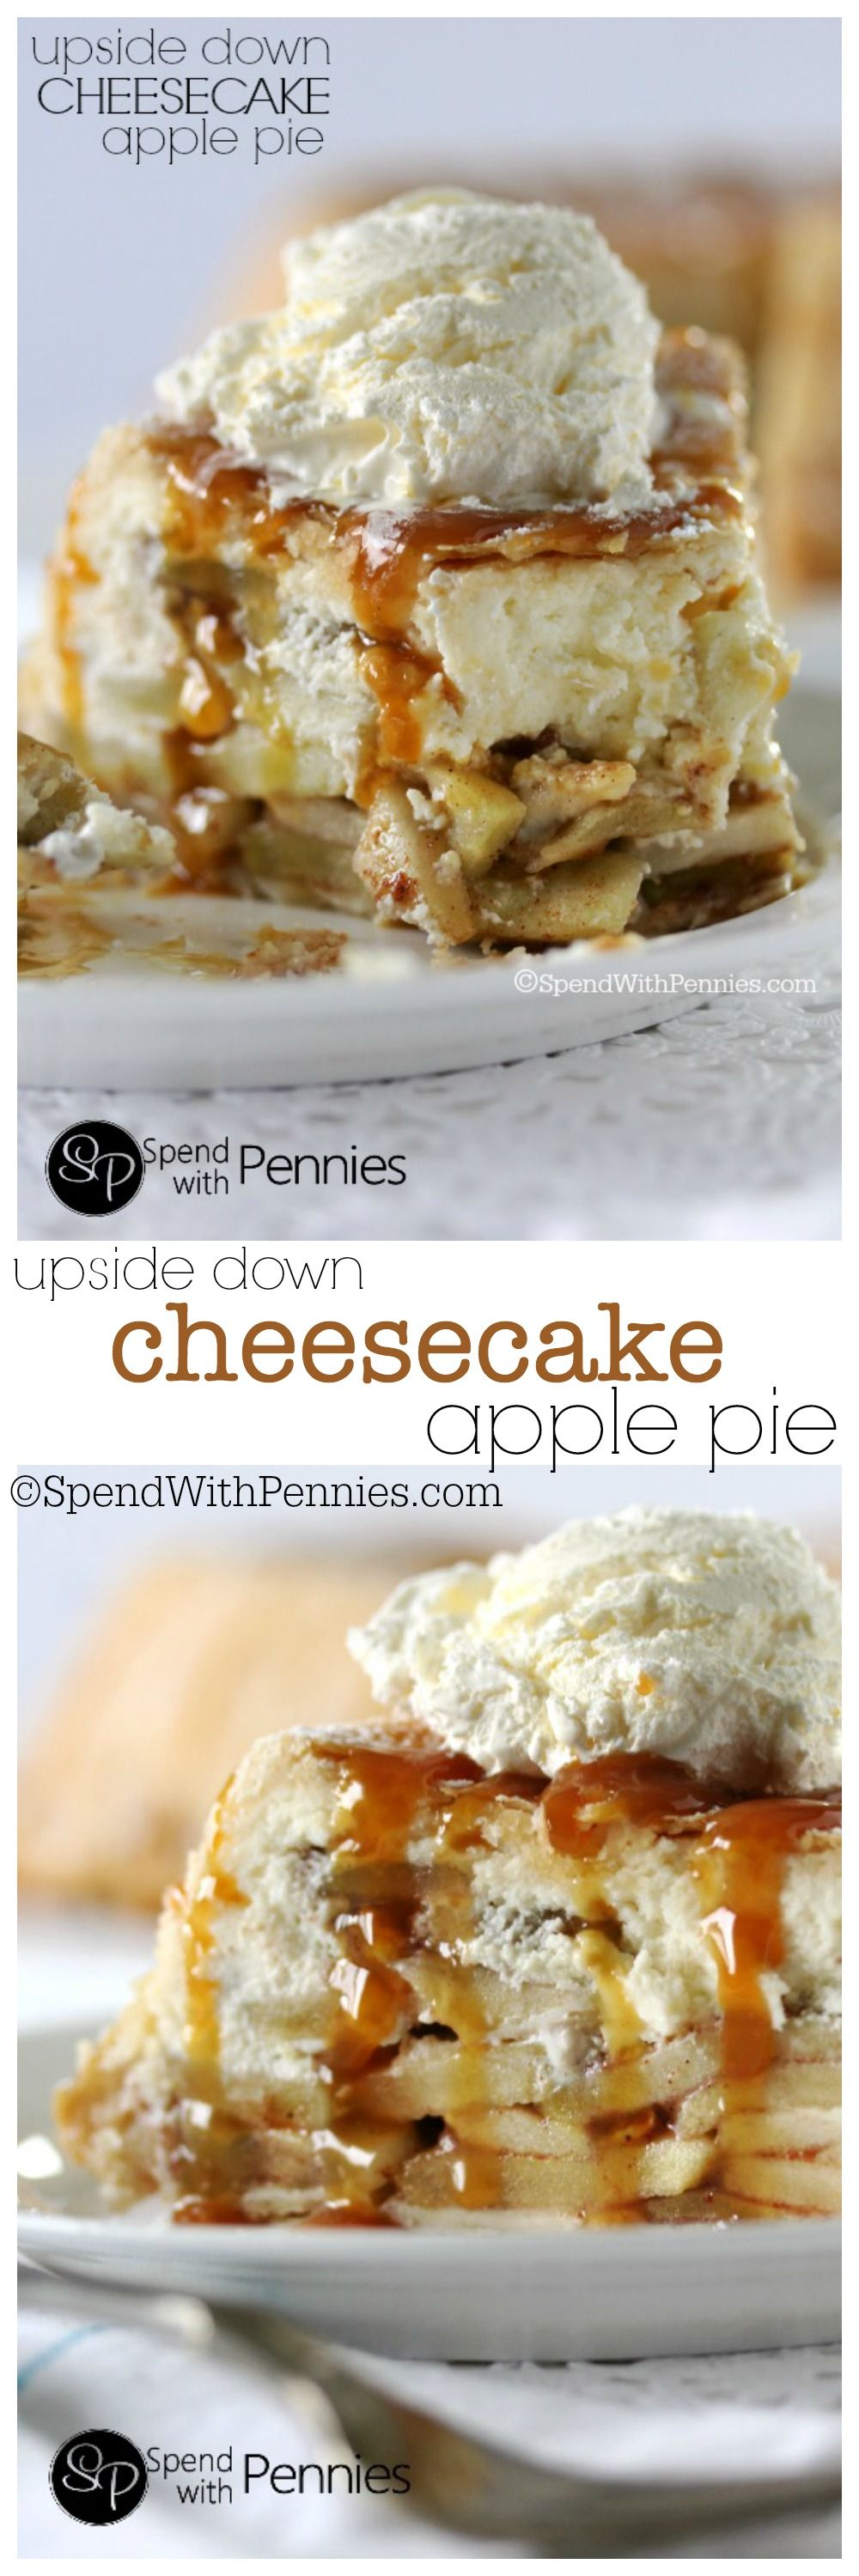 Upside Down Cheesecake Apple Pie! This really is the most